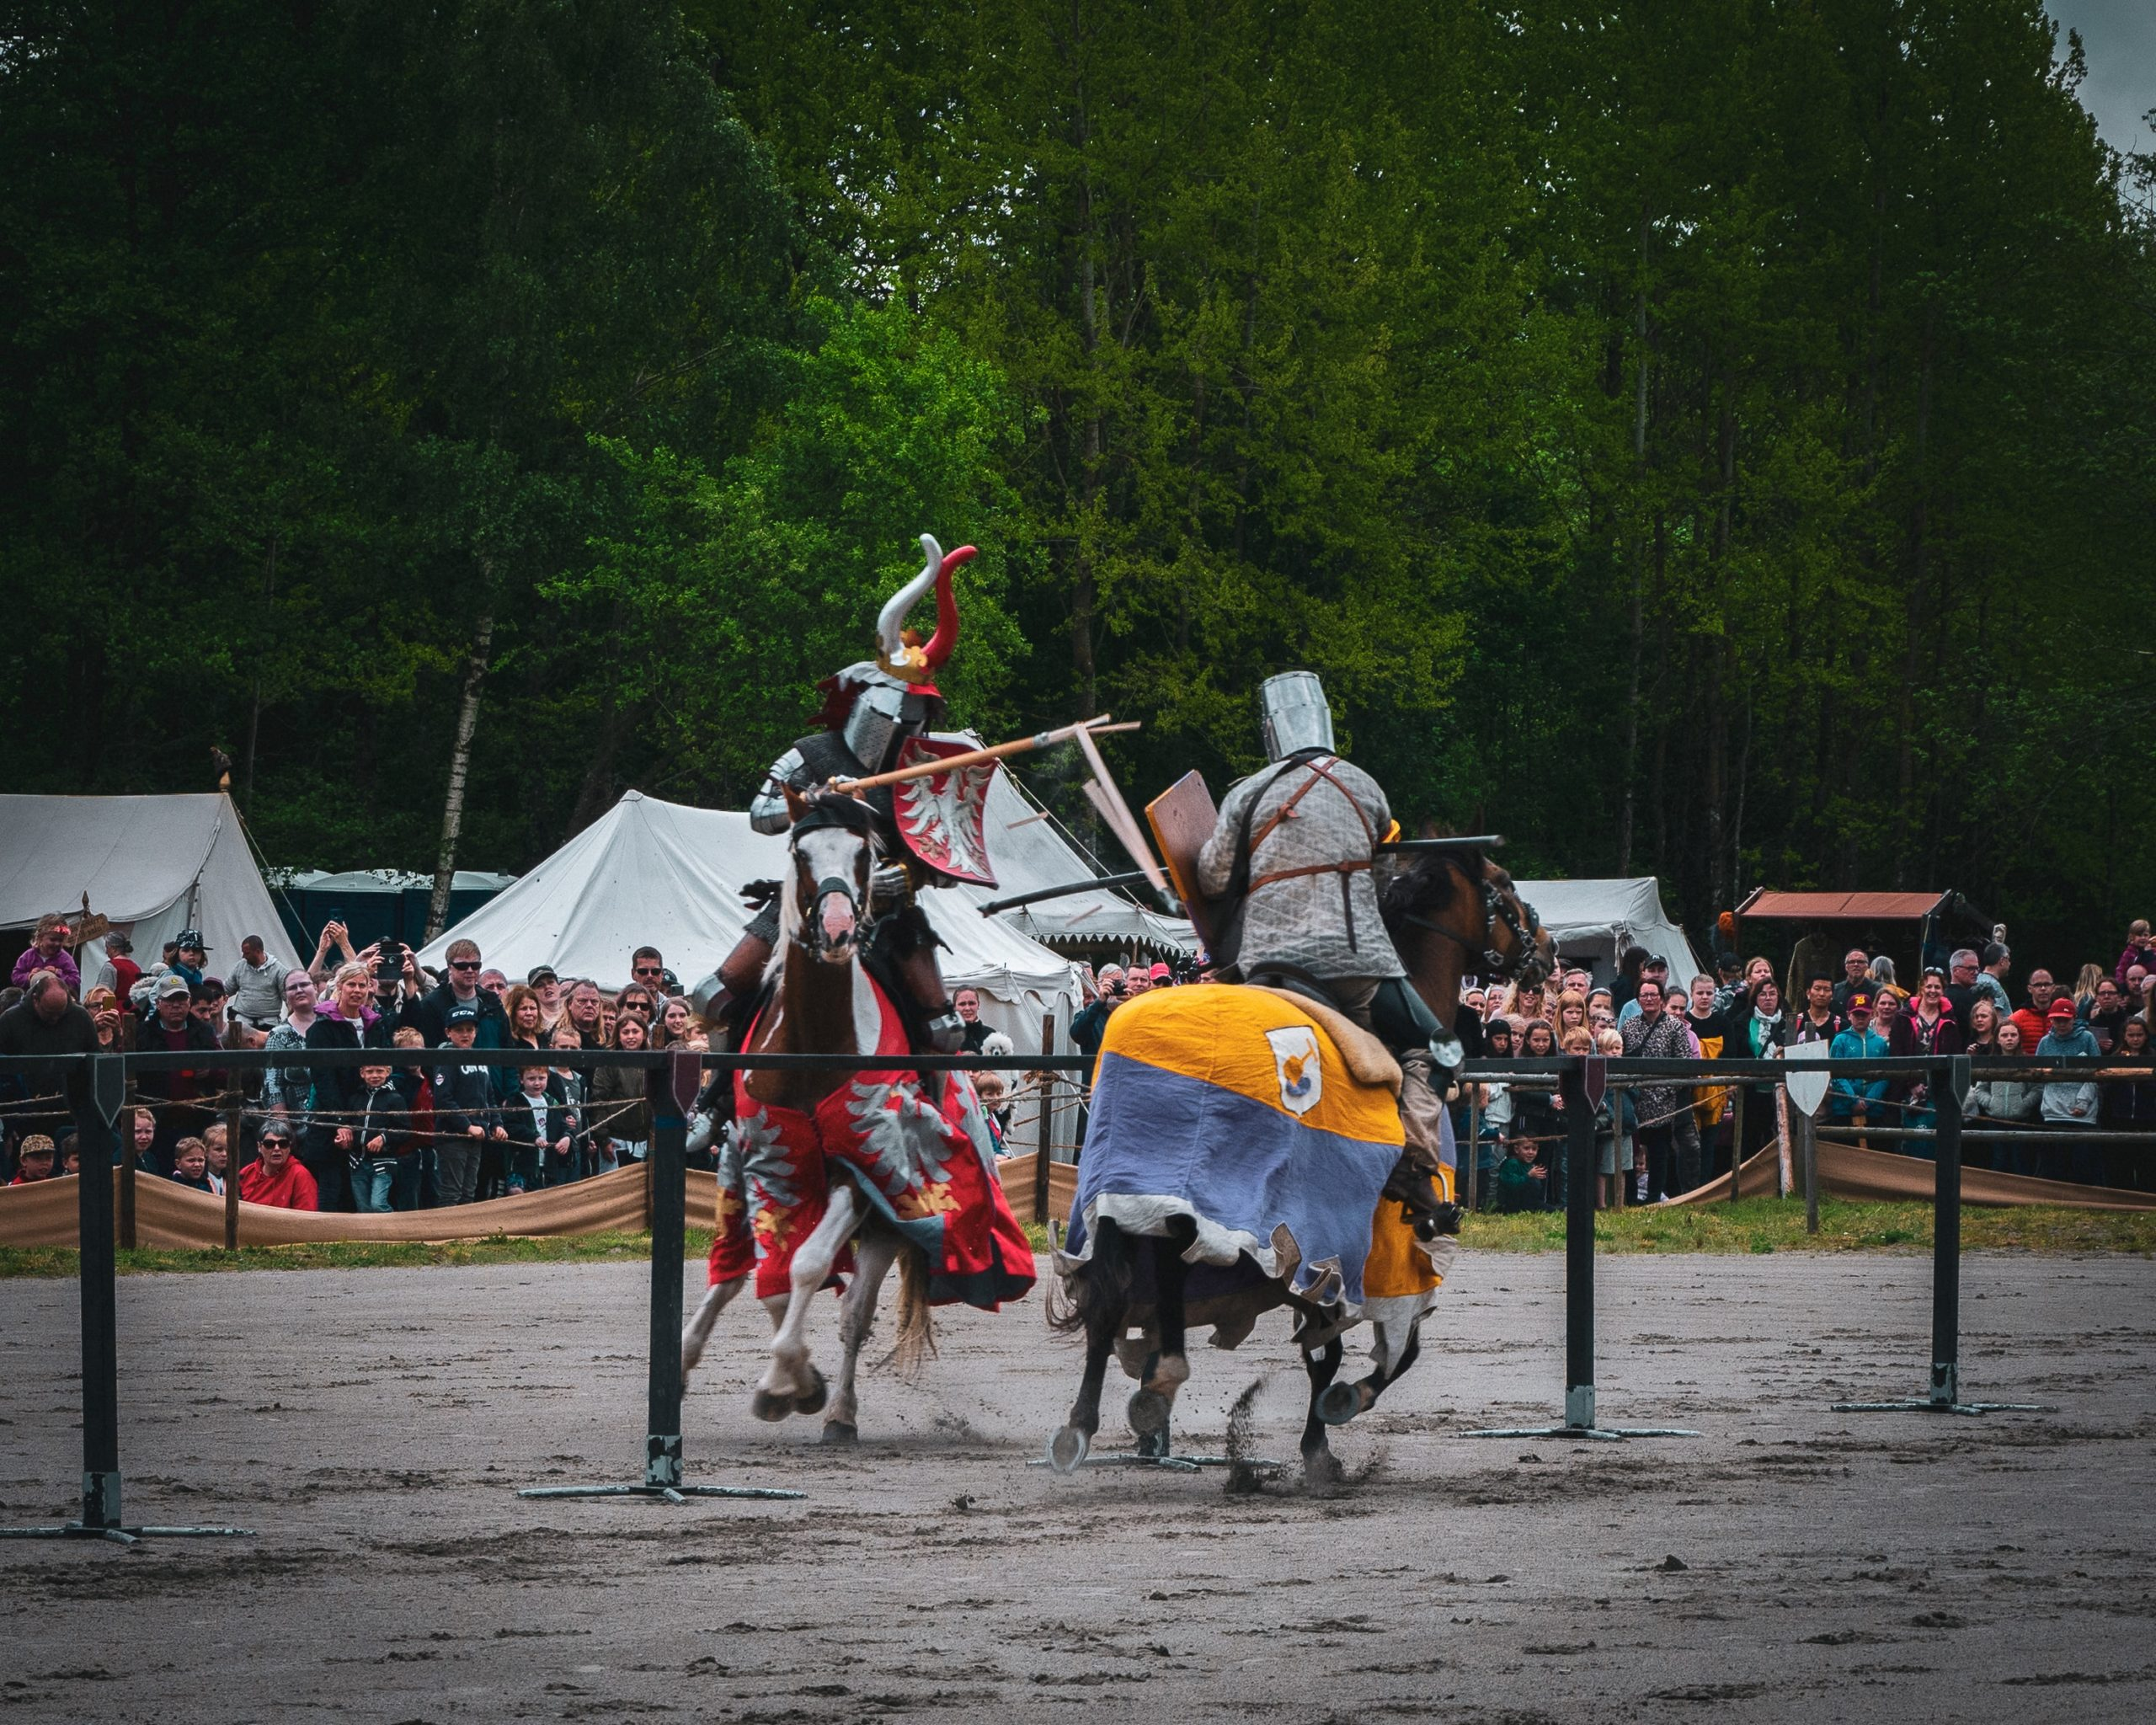 Two knights jousting on horses.